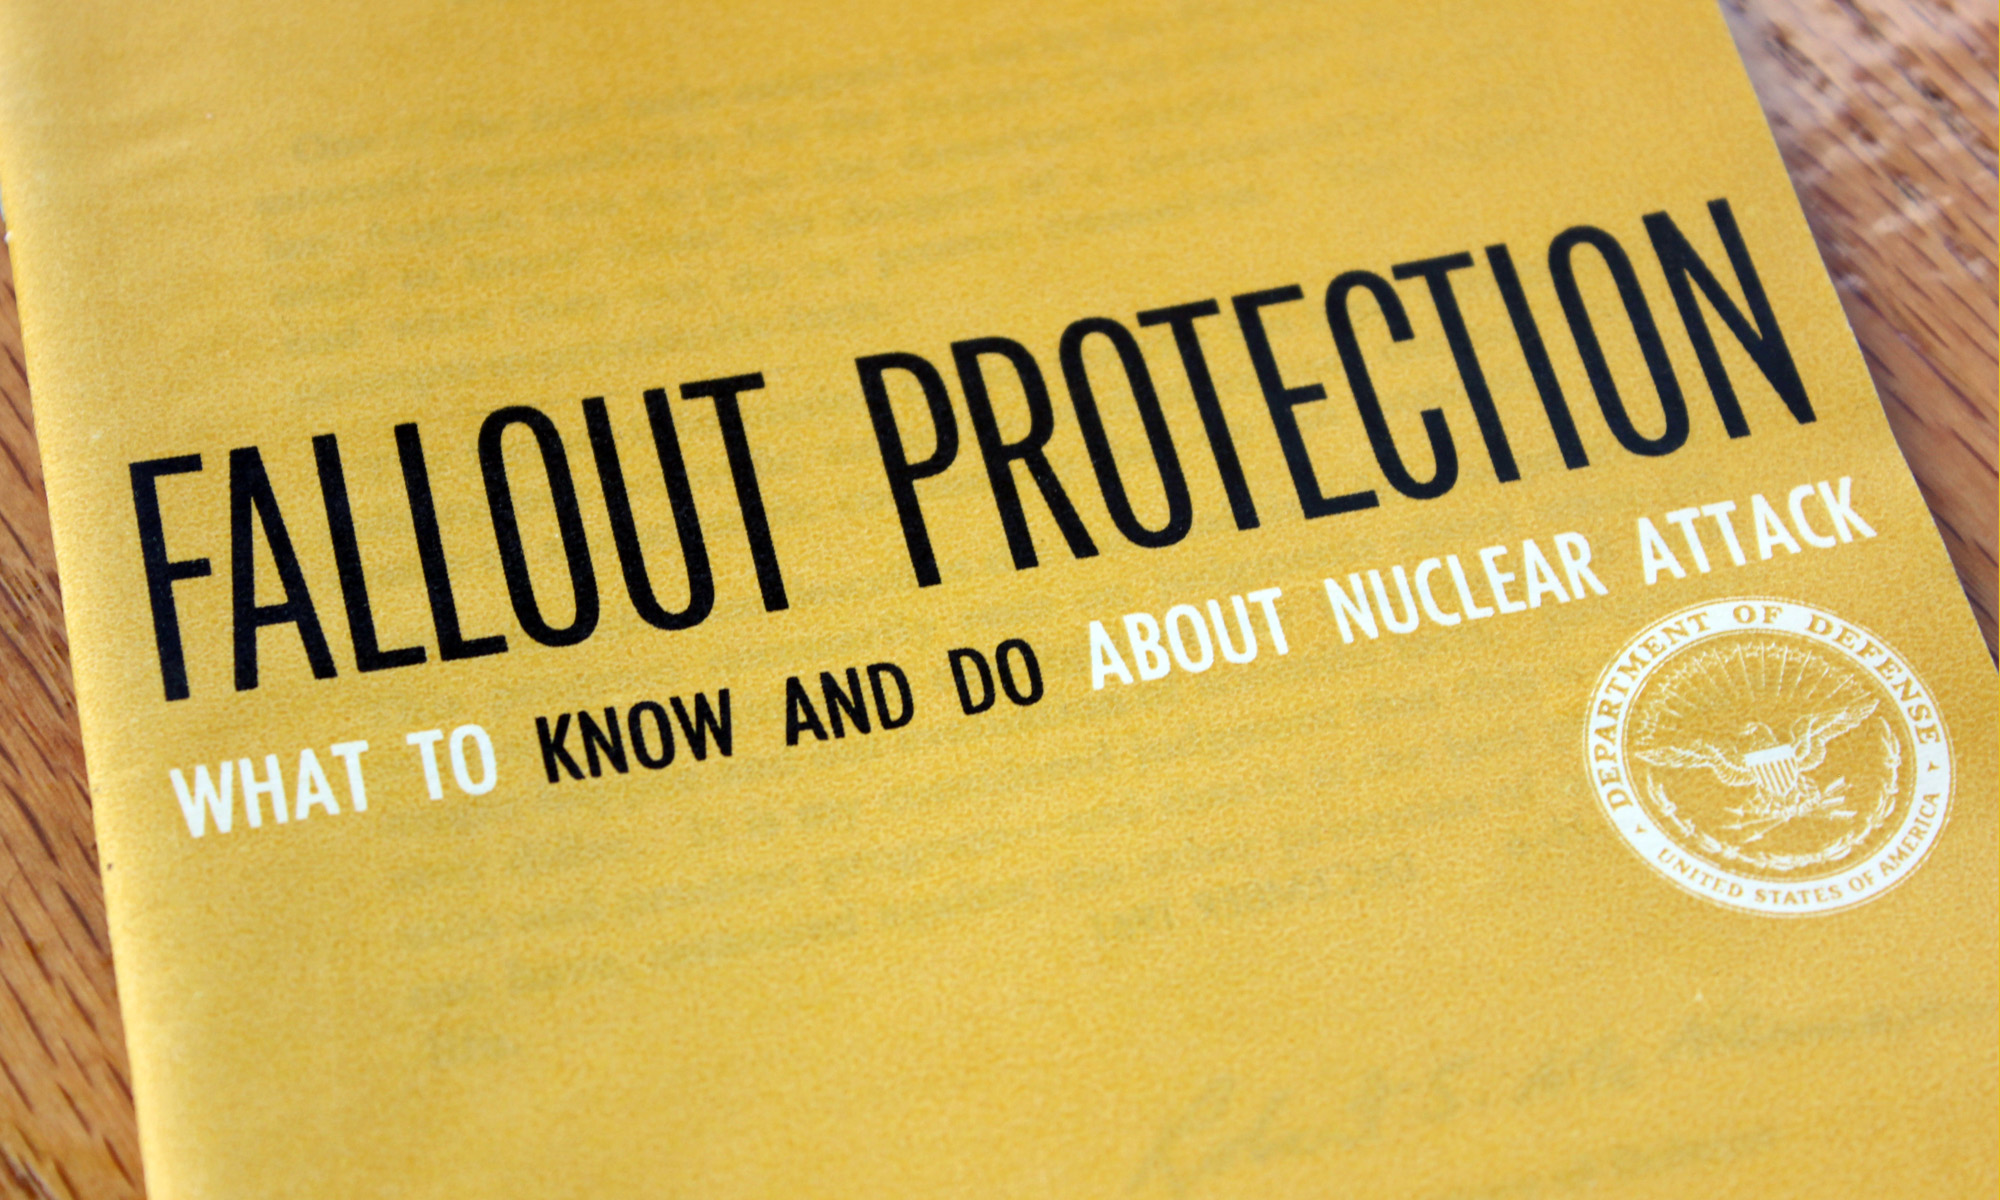 """""""Fallout protection: What to know and do about nuclear attack,"""" was a pamphlet created in 1961, intending to spread the word about fallout shelters and ..."""